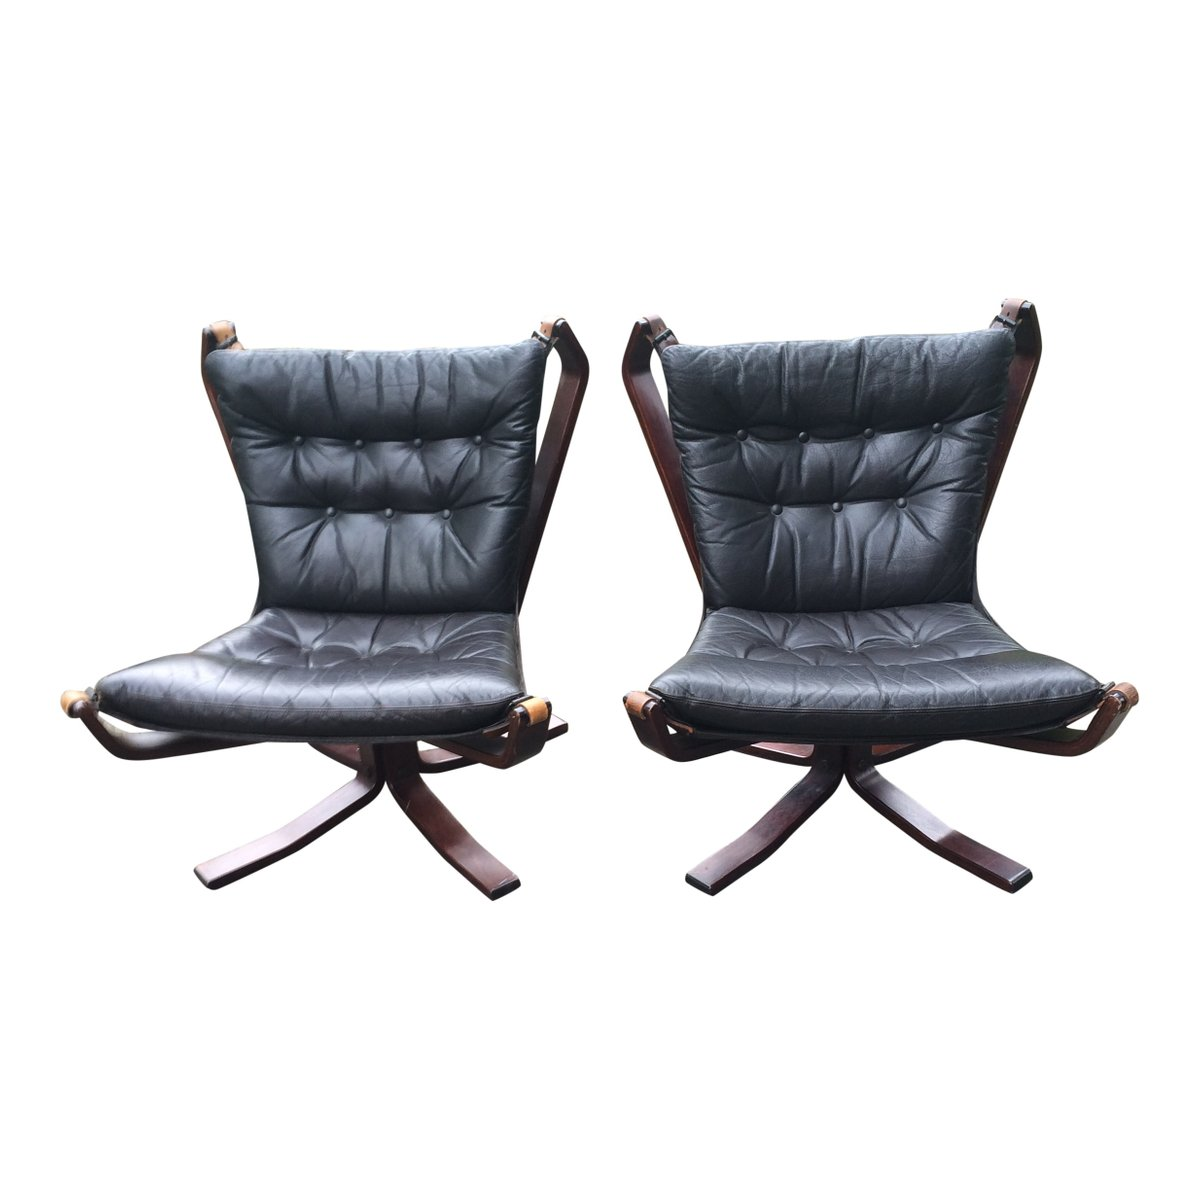 Black leather falcon chair by sigurd ressell set of 2 for for Leather kitchen chairs for sale